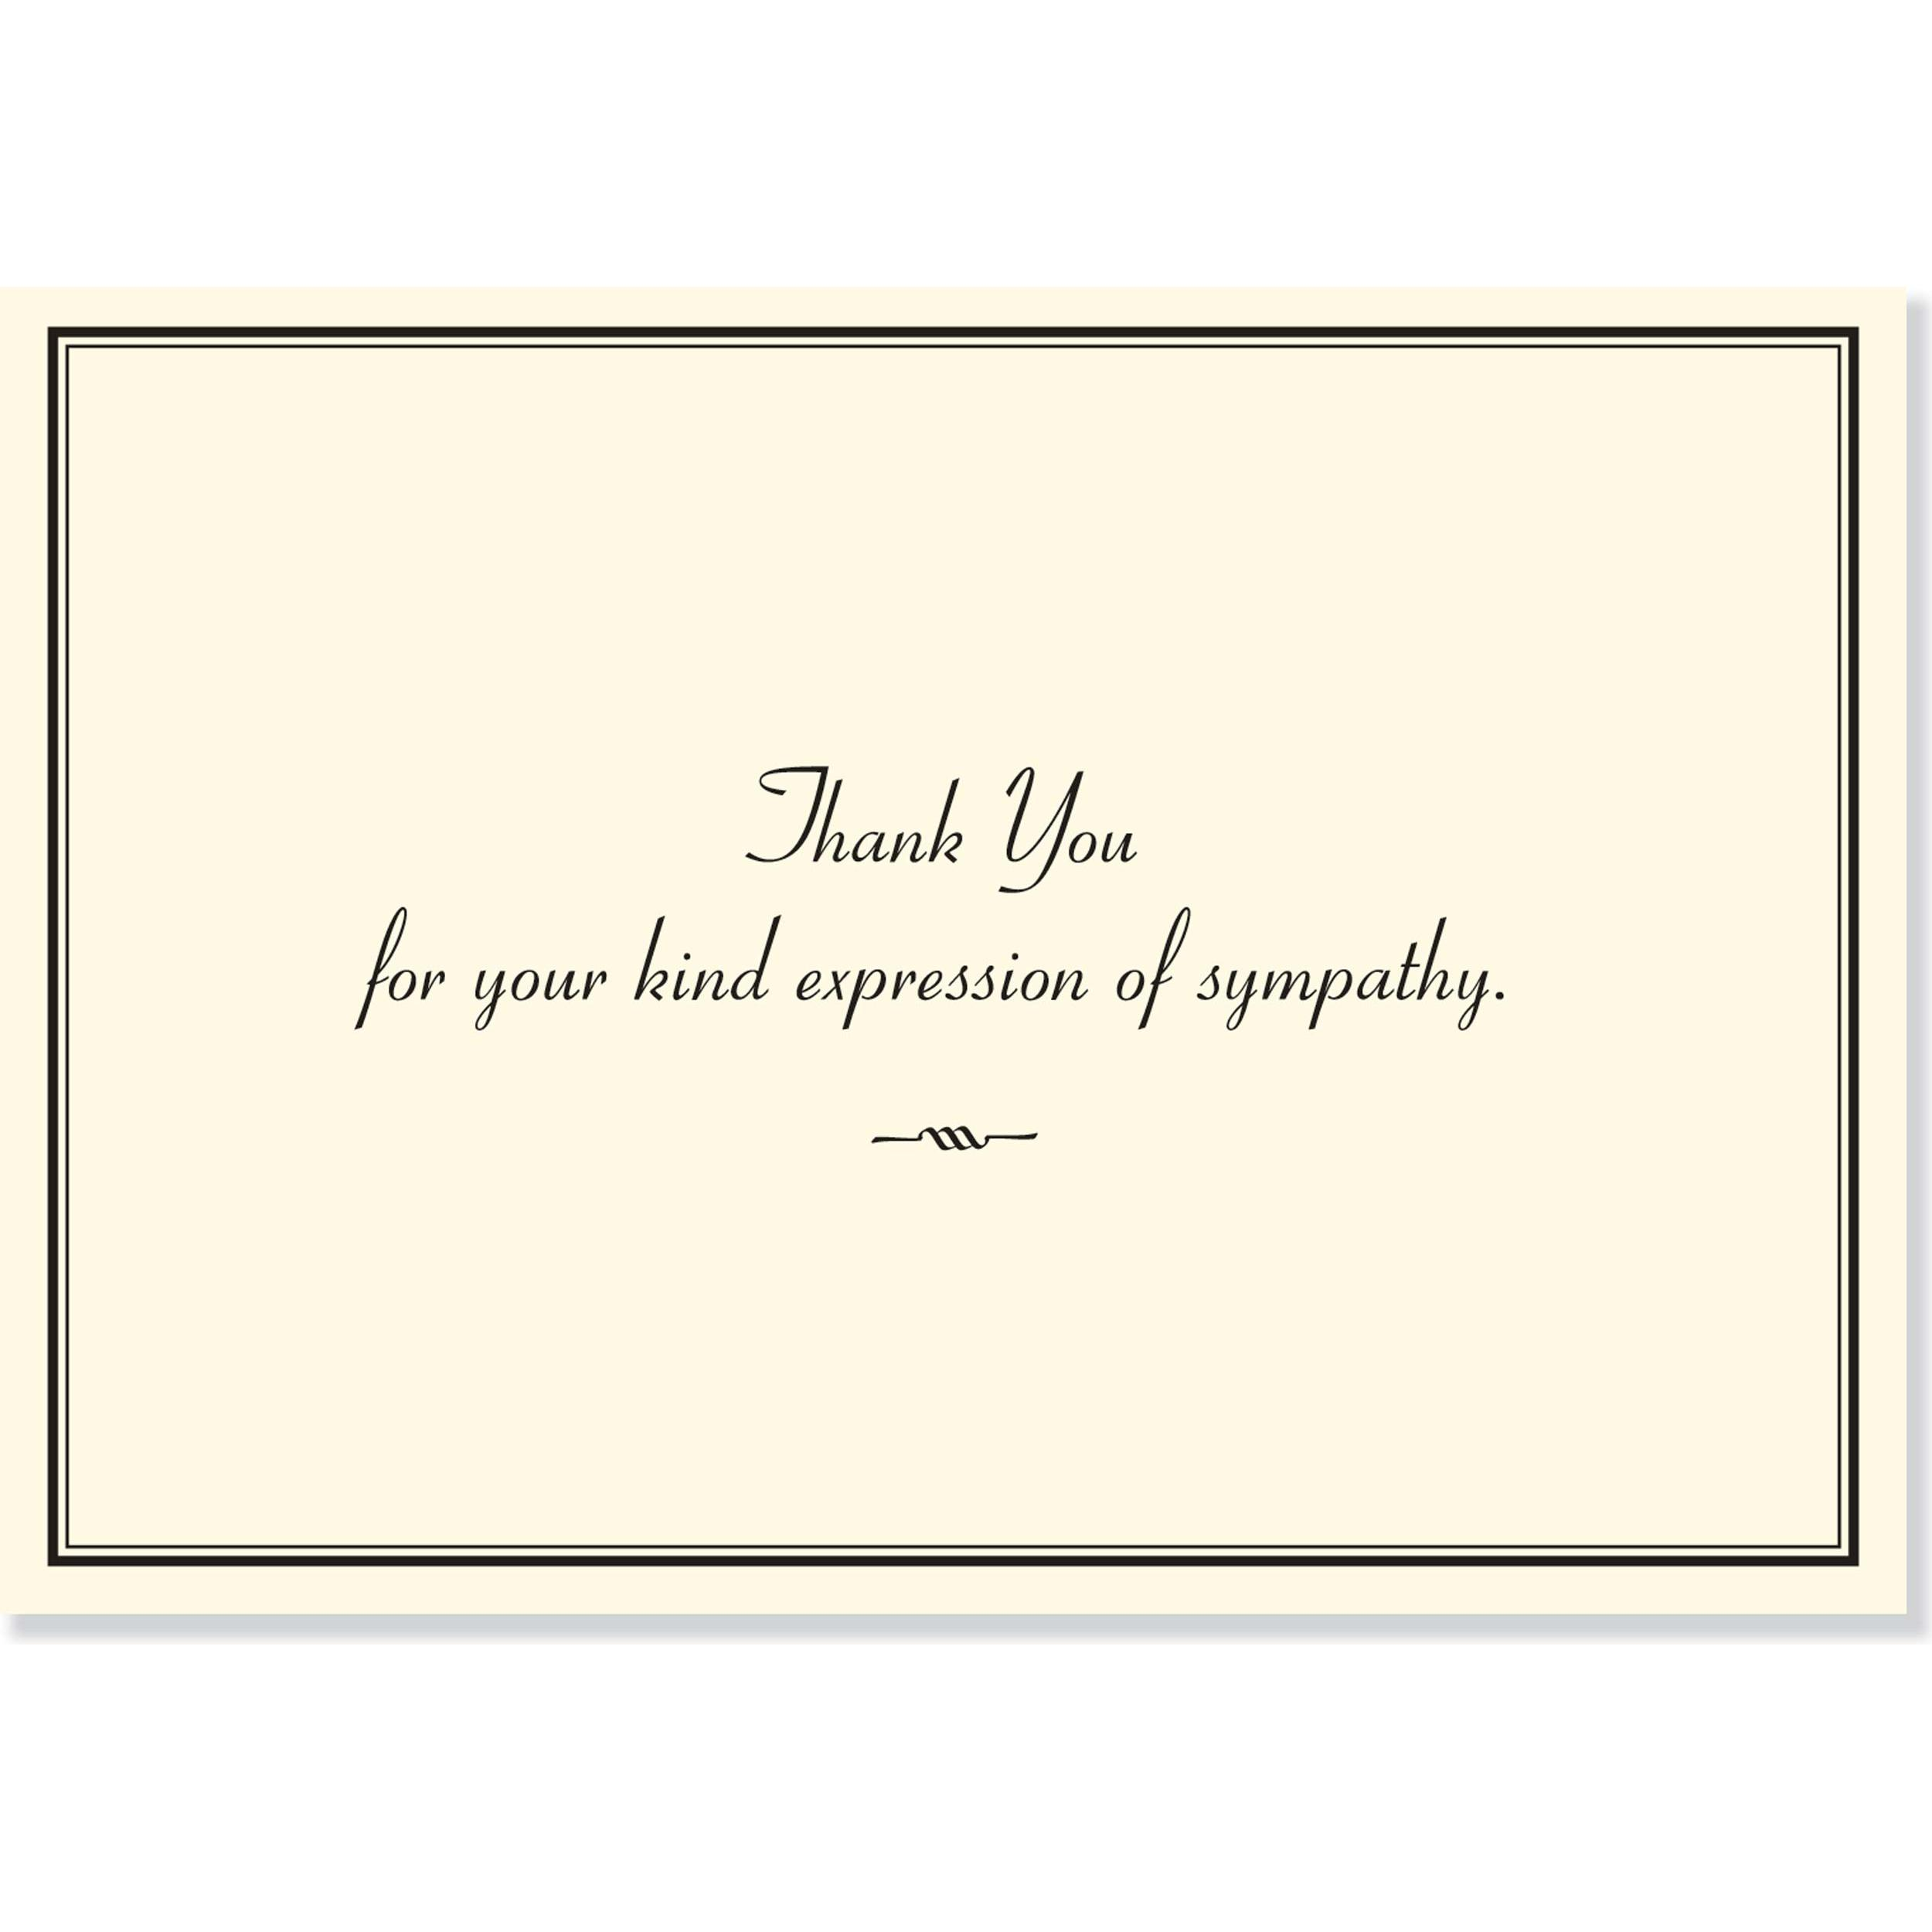 Quotes On Thank You Notes: Sympathy Thank You Notes (Stationery, Note Cards): Peter